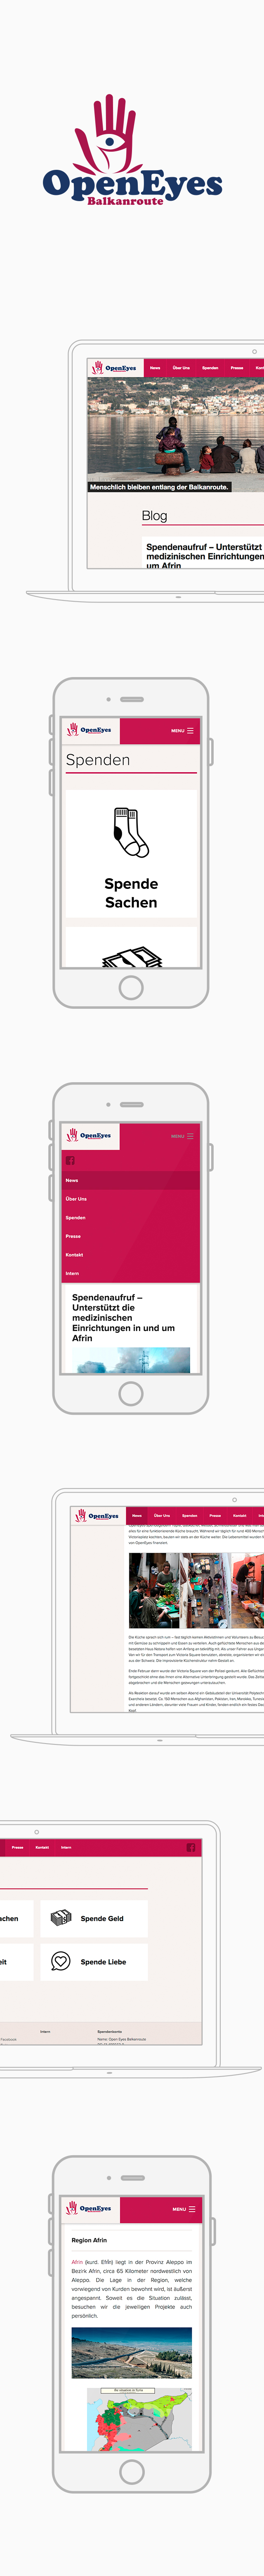 GLUNZ Projekt: Open Eyes - Mobile version